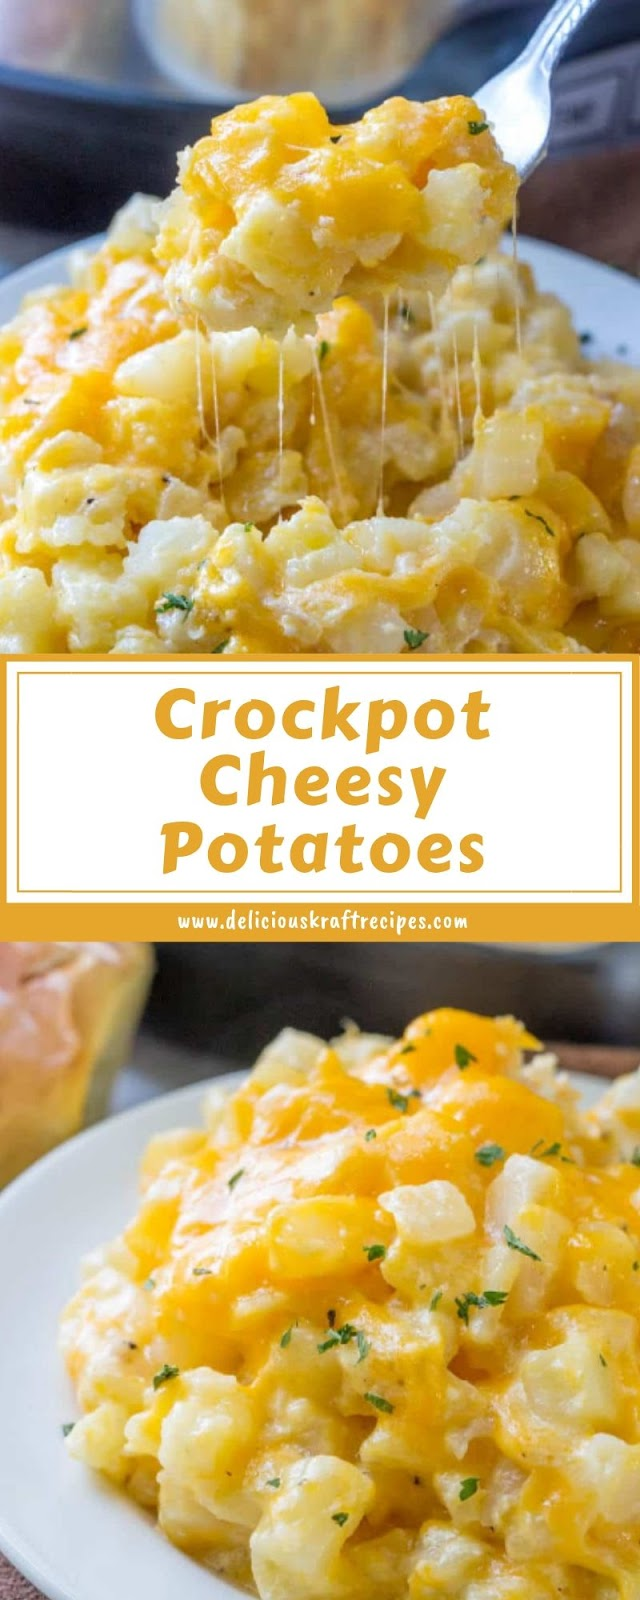 Crockpot Cheesy Potatoes